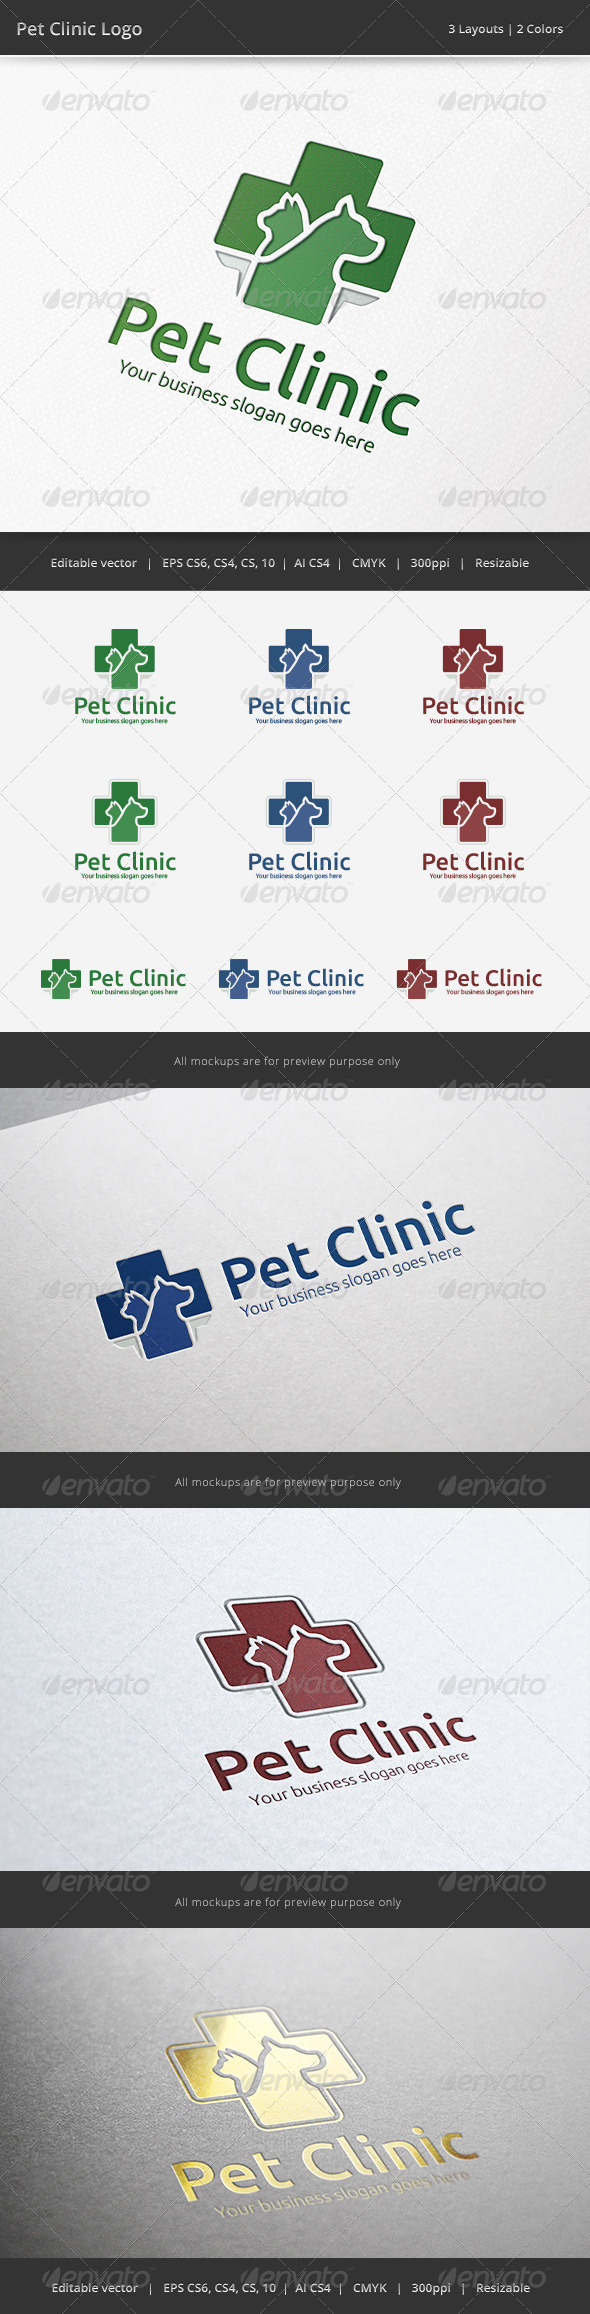 GraphicRiver Pet Clinic Veterinary Logo 6525831